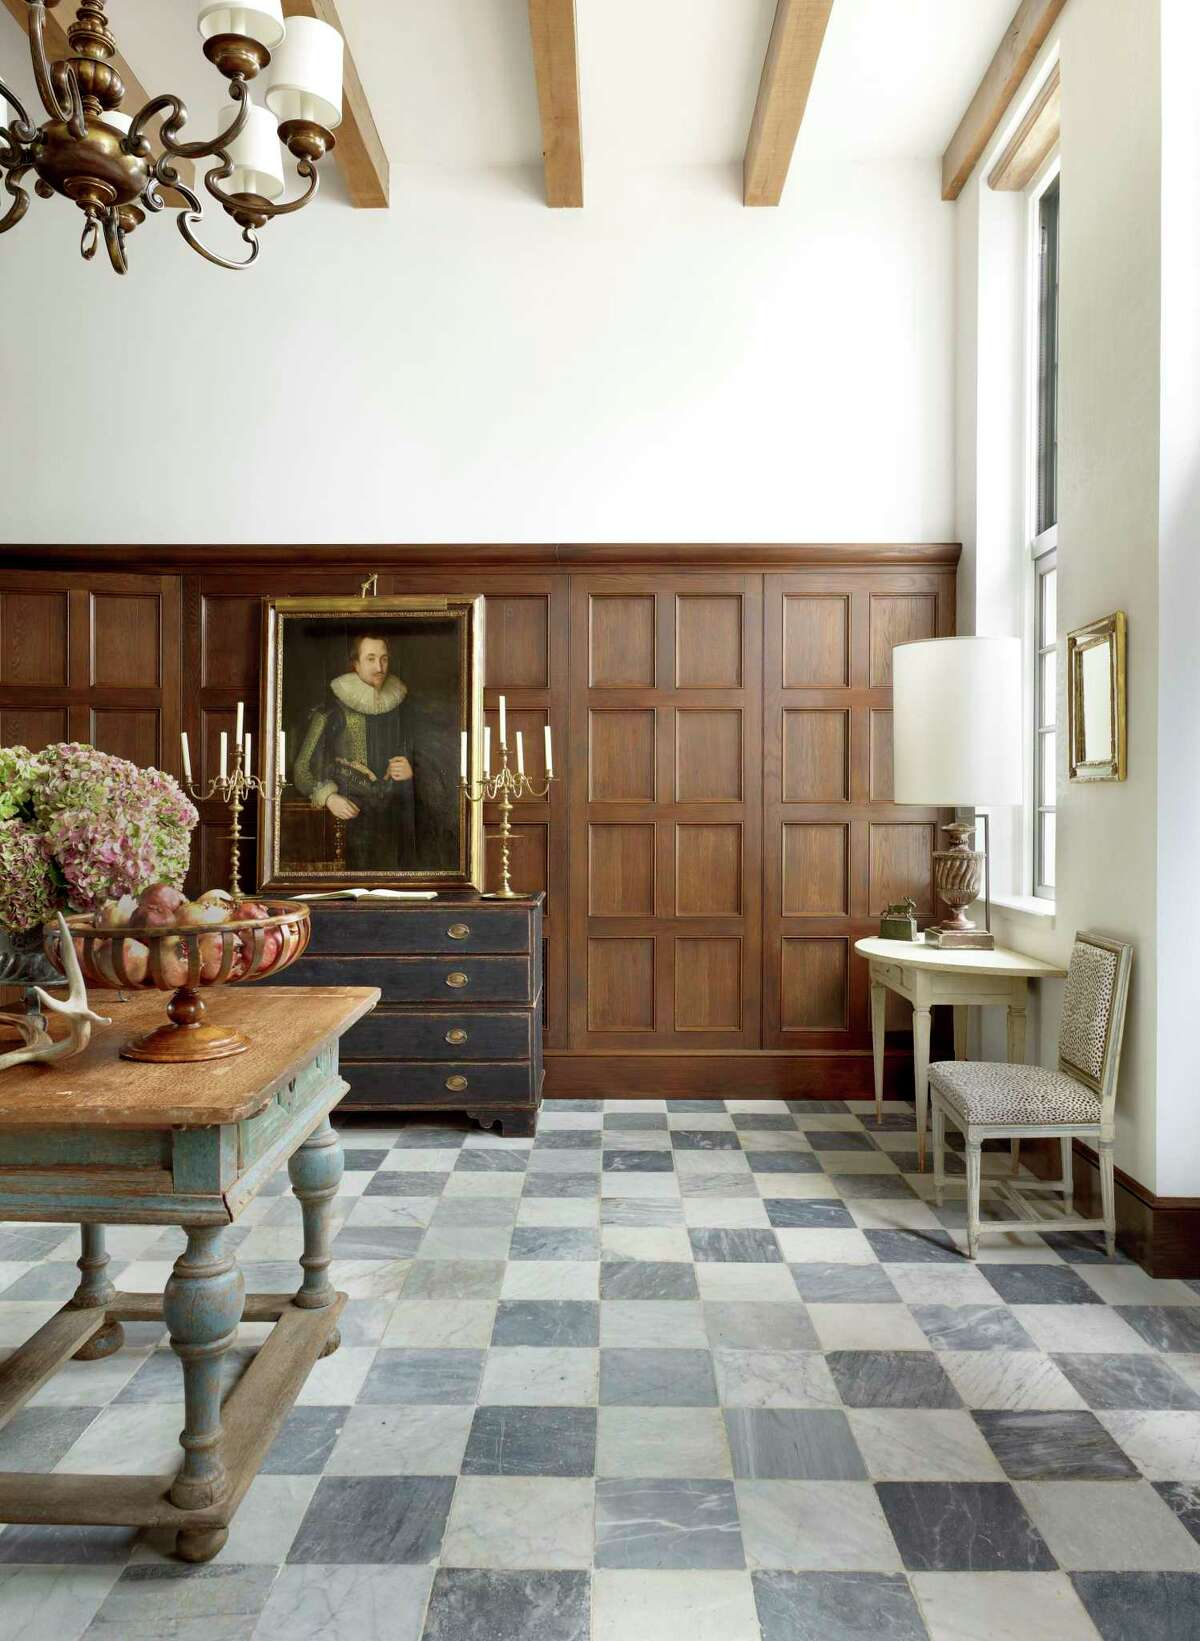 Designer Bobby McAlpine's says clients are looking for something different; they don't want their homes to look like everything else on social media. Painted floors and antiques set apart this room featured in his book,